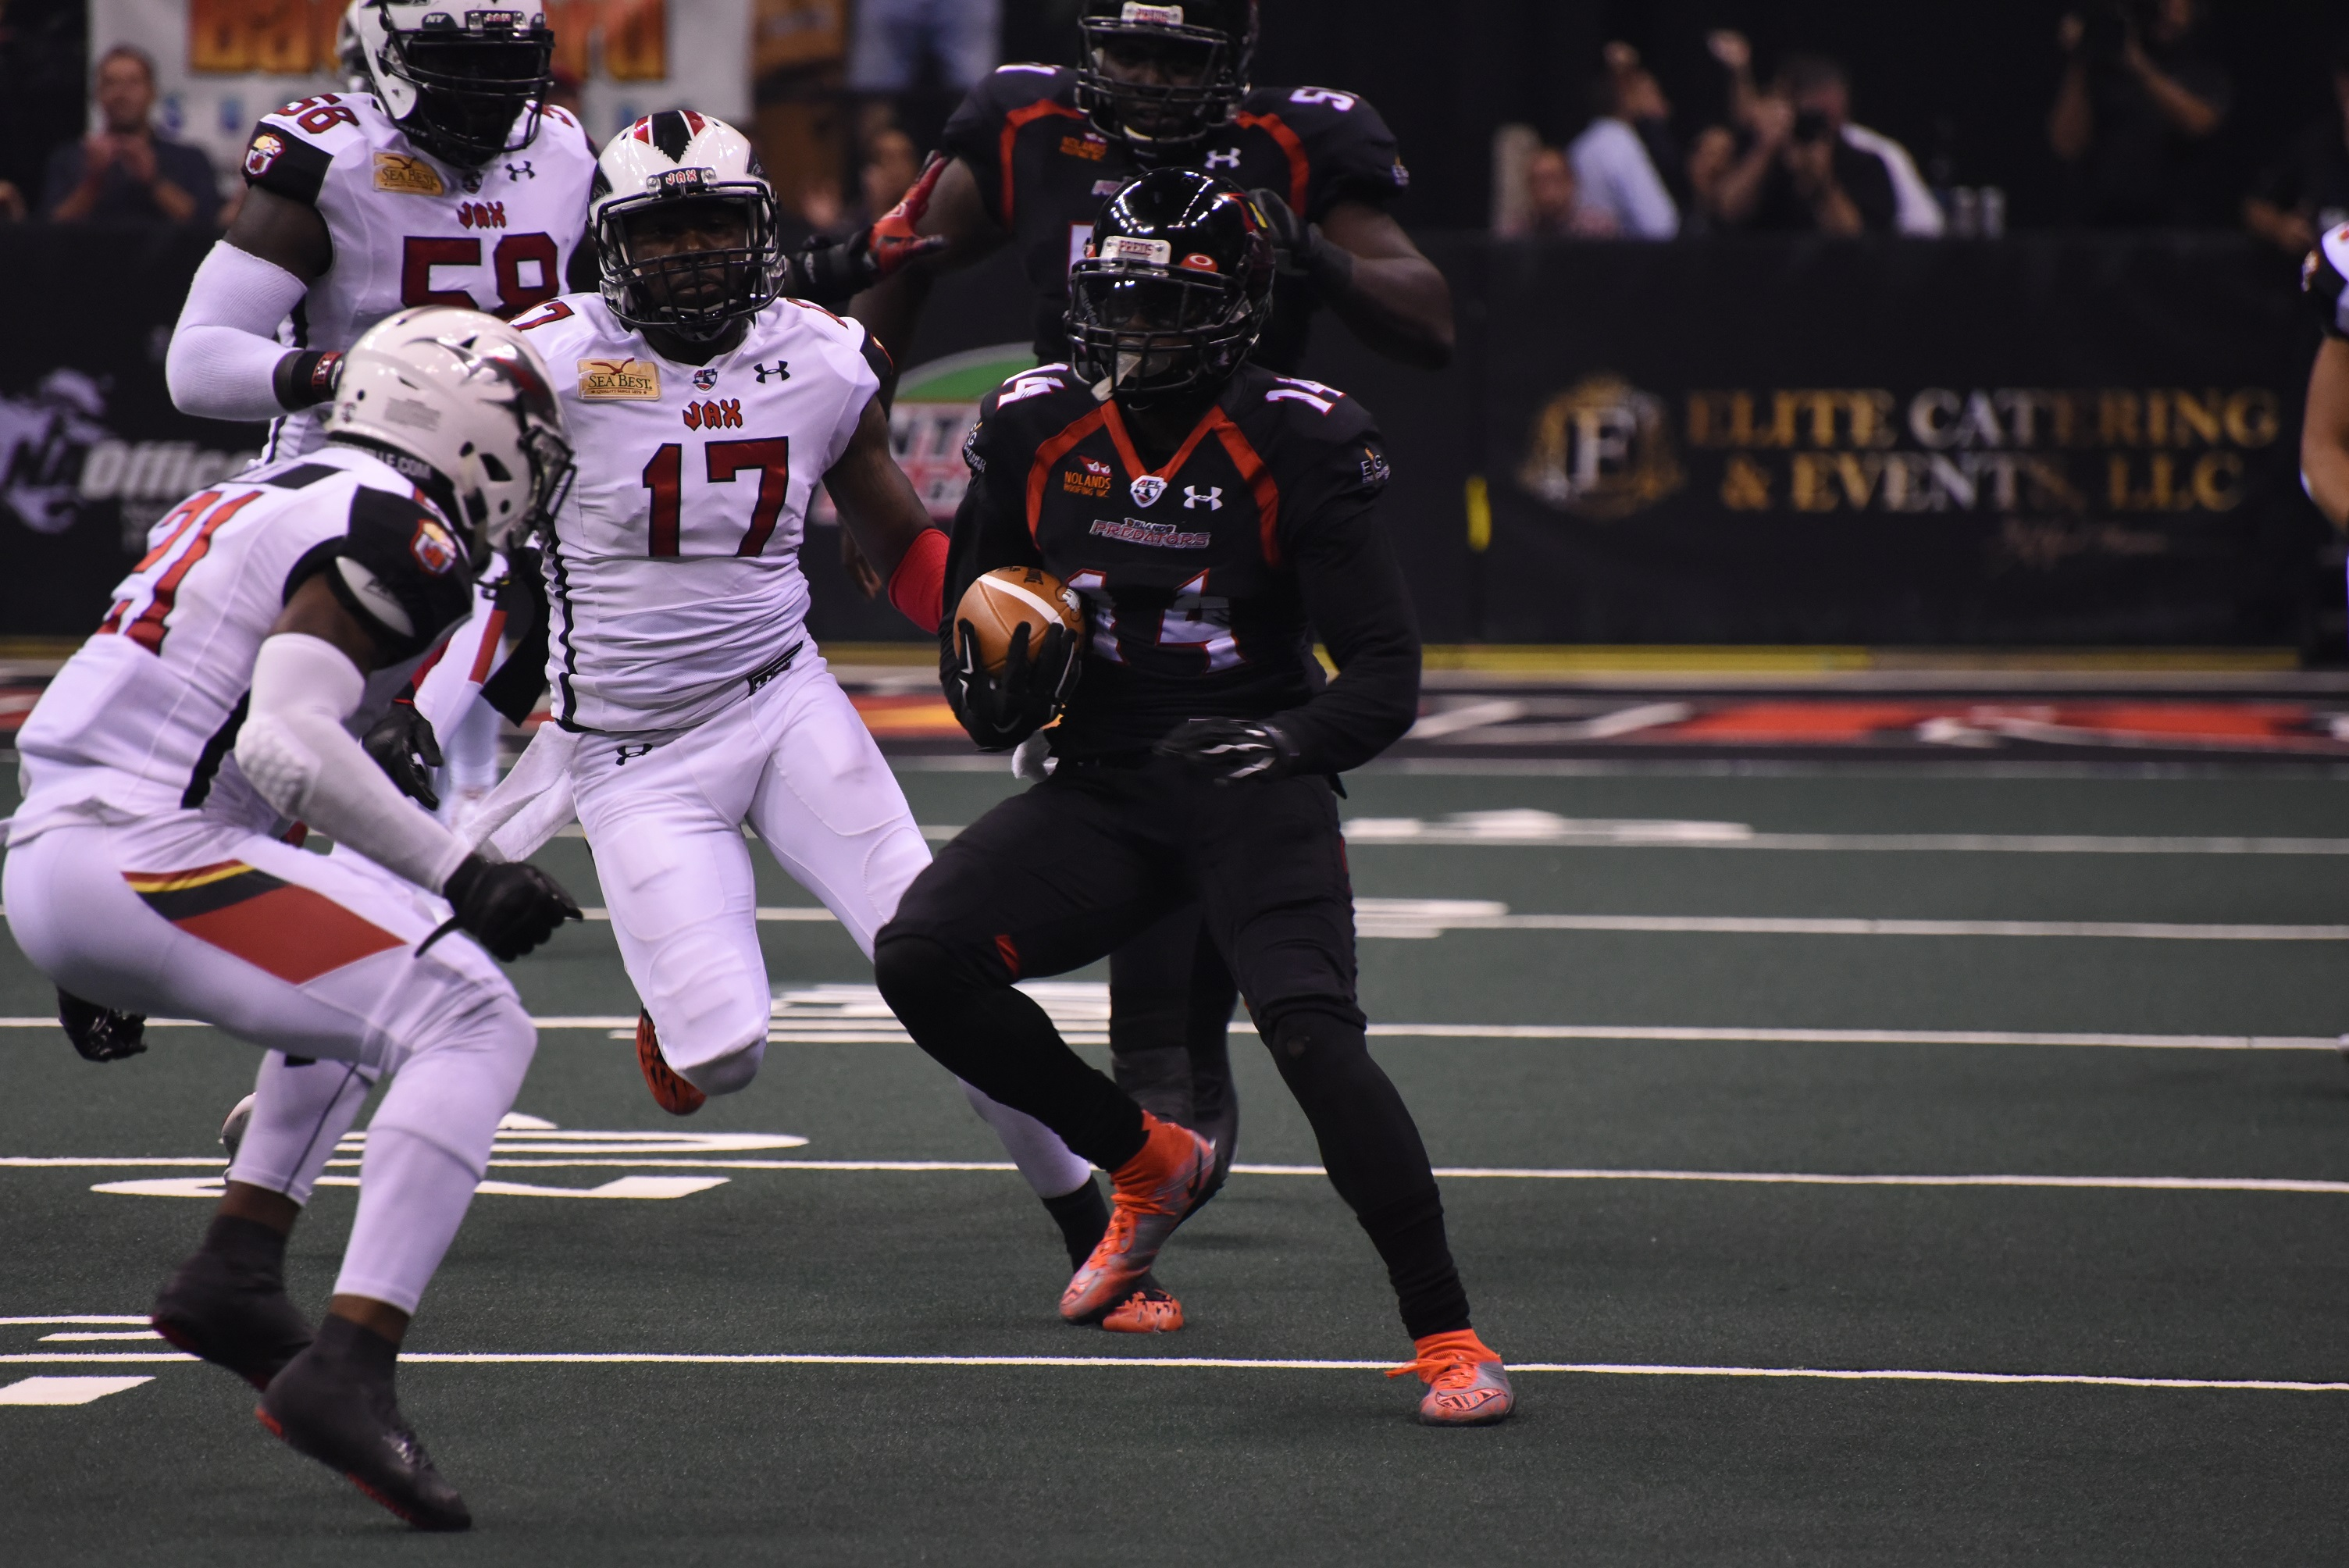 orlando predators can't keep jacksonville sharks from cashing in